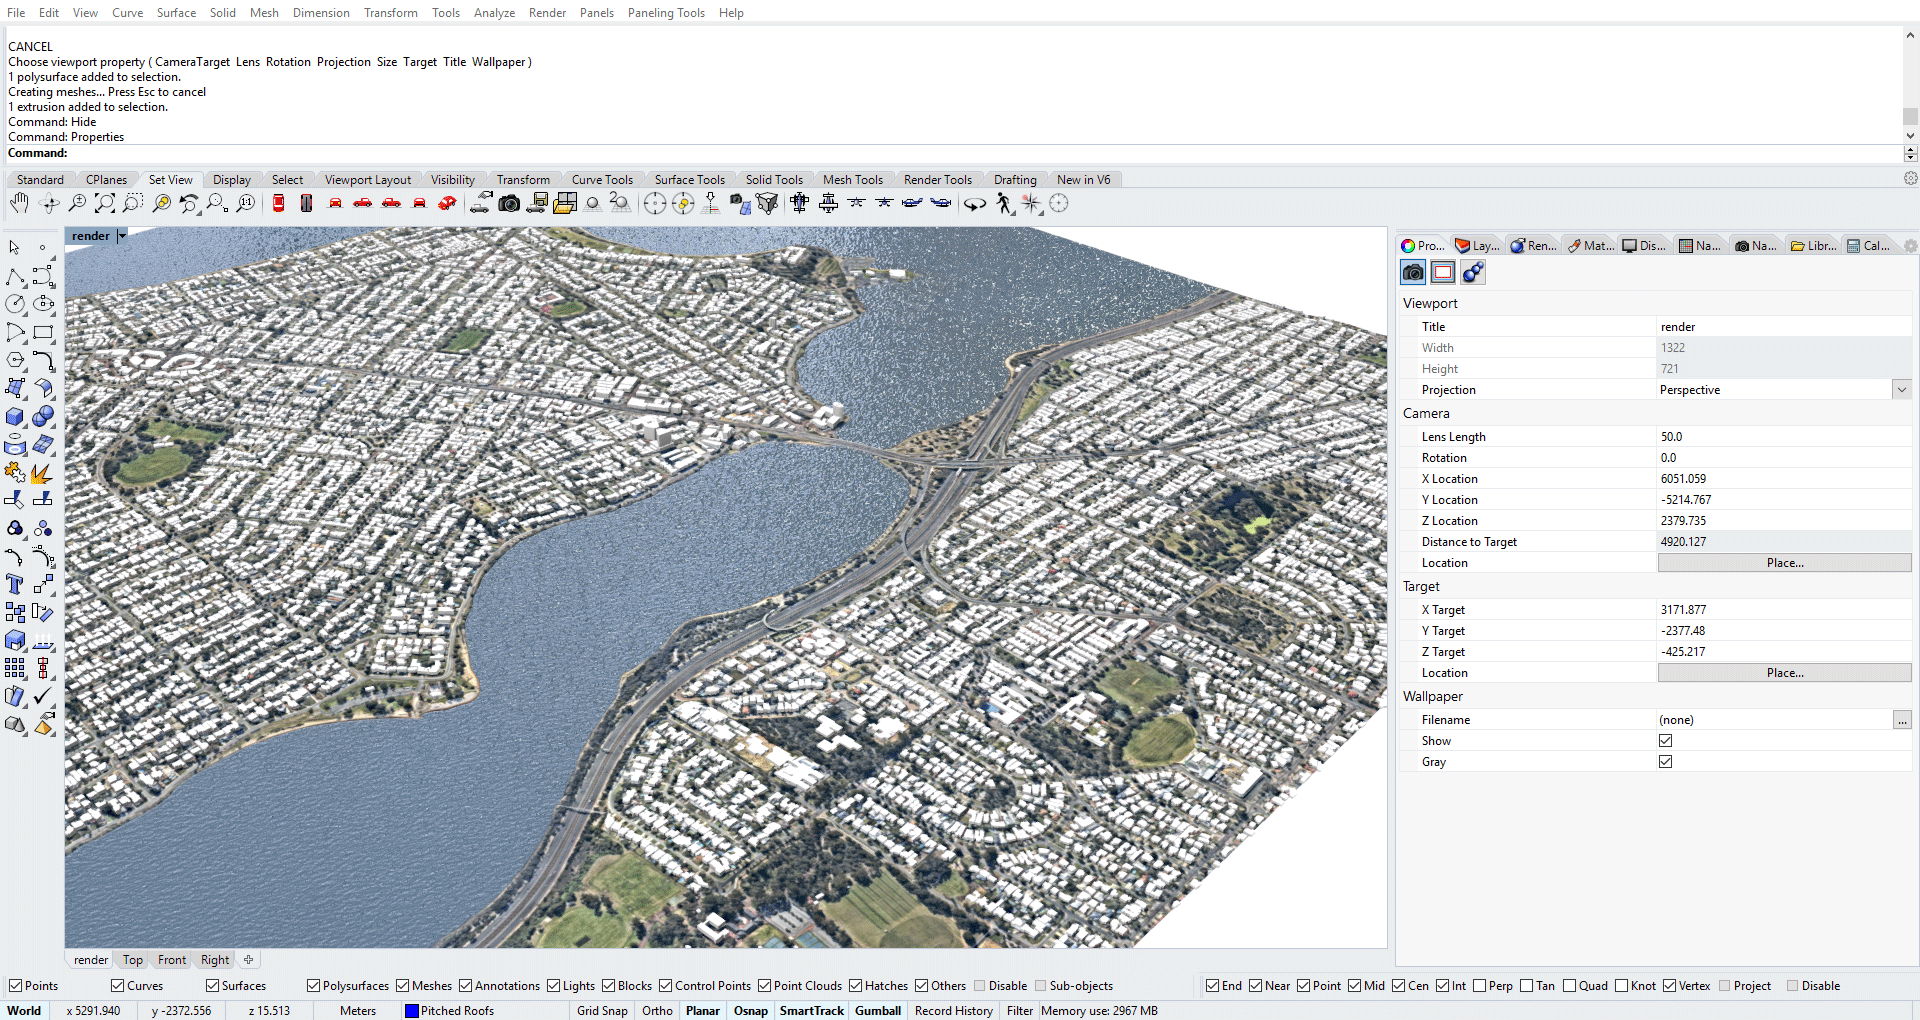 [Figure: Snapshot of the Rhino 3D viewport, demonstrating the 3D model generated from freely available data sets.]